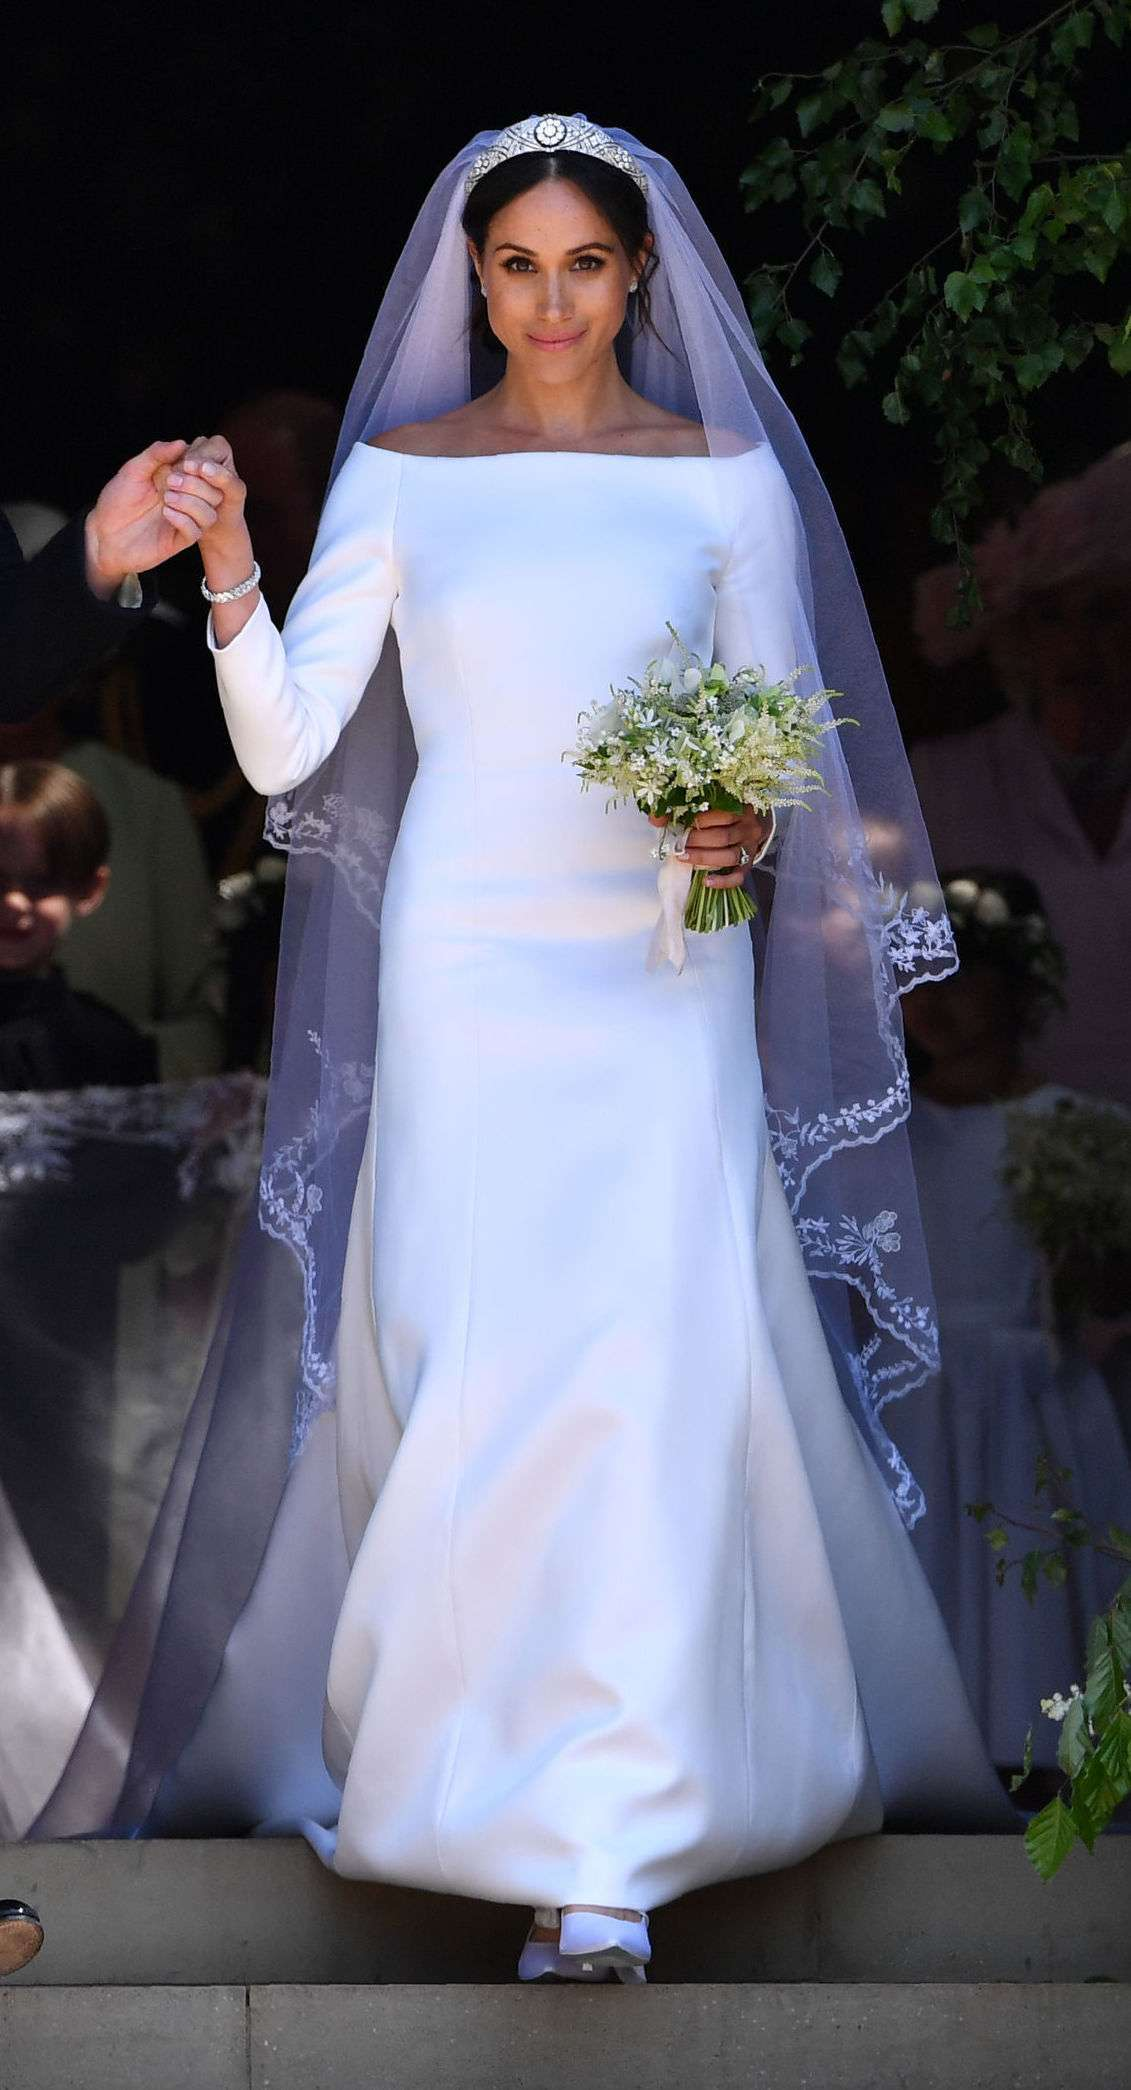 markle-wedding-dress-20035593